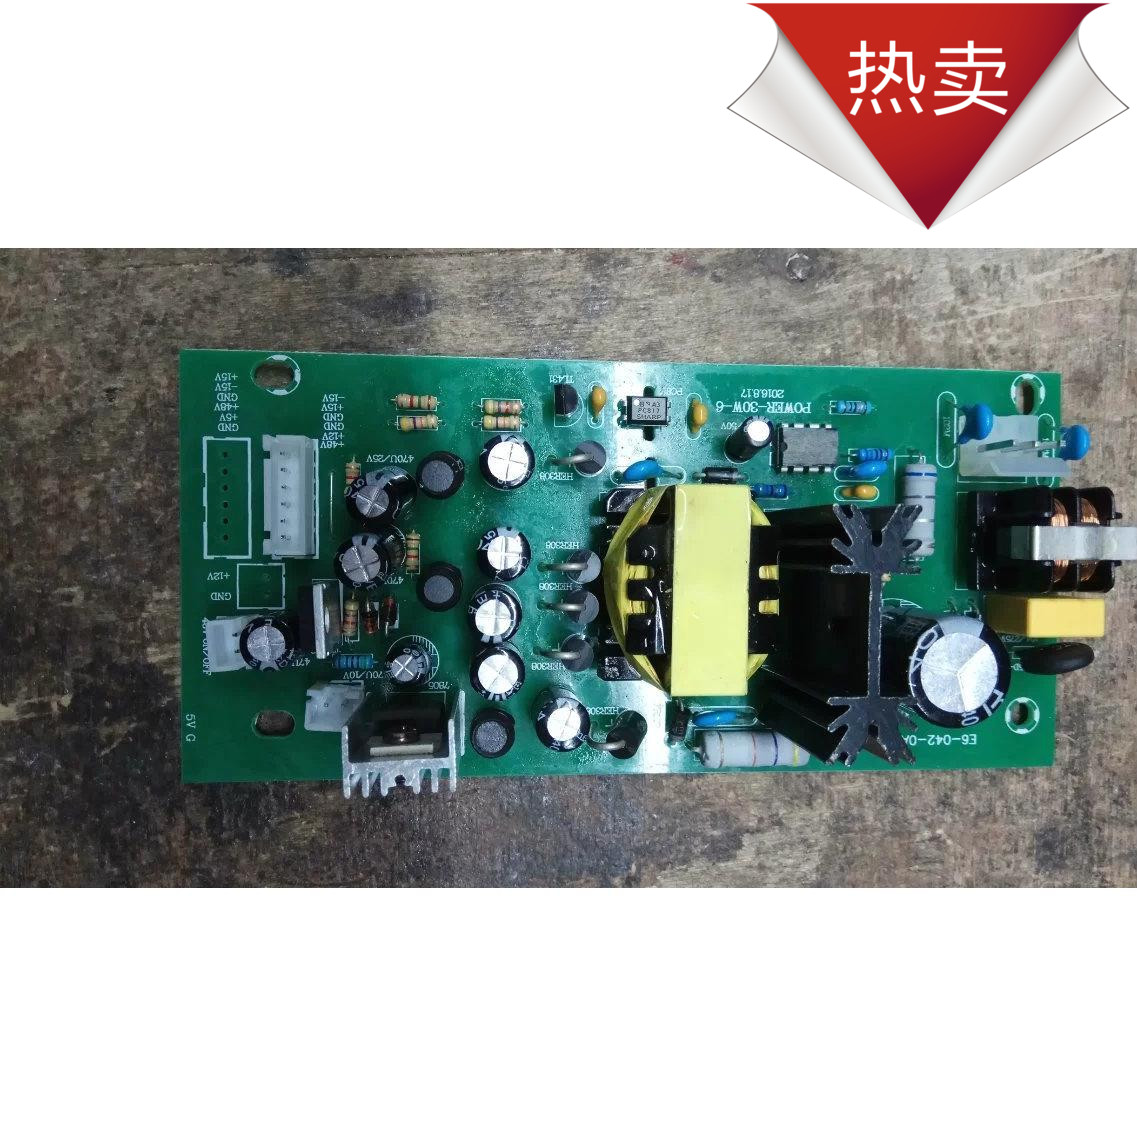 Behringer Power Supply Circuit Board Wiring Diagrams Moen 7906 Parts List And Diagram Ereplacementpartscom Usd 19 46 Applicable Mixer New Switching Sound Rh Chinahao Com 18 Volt Alibaba Tvs Boards Info